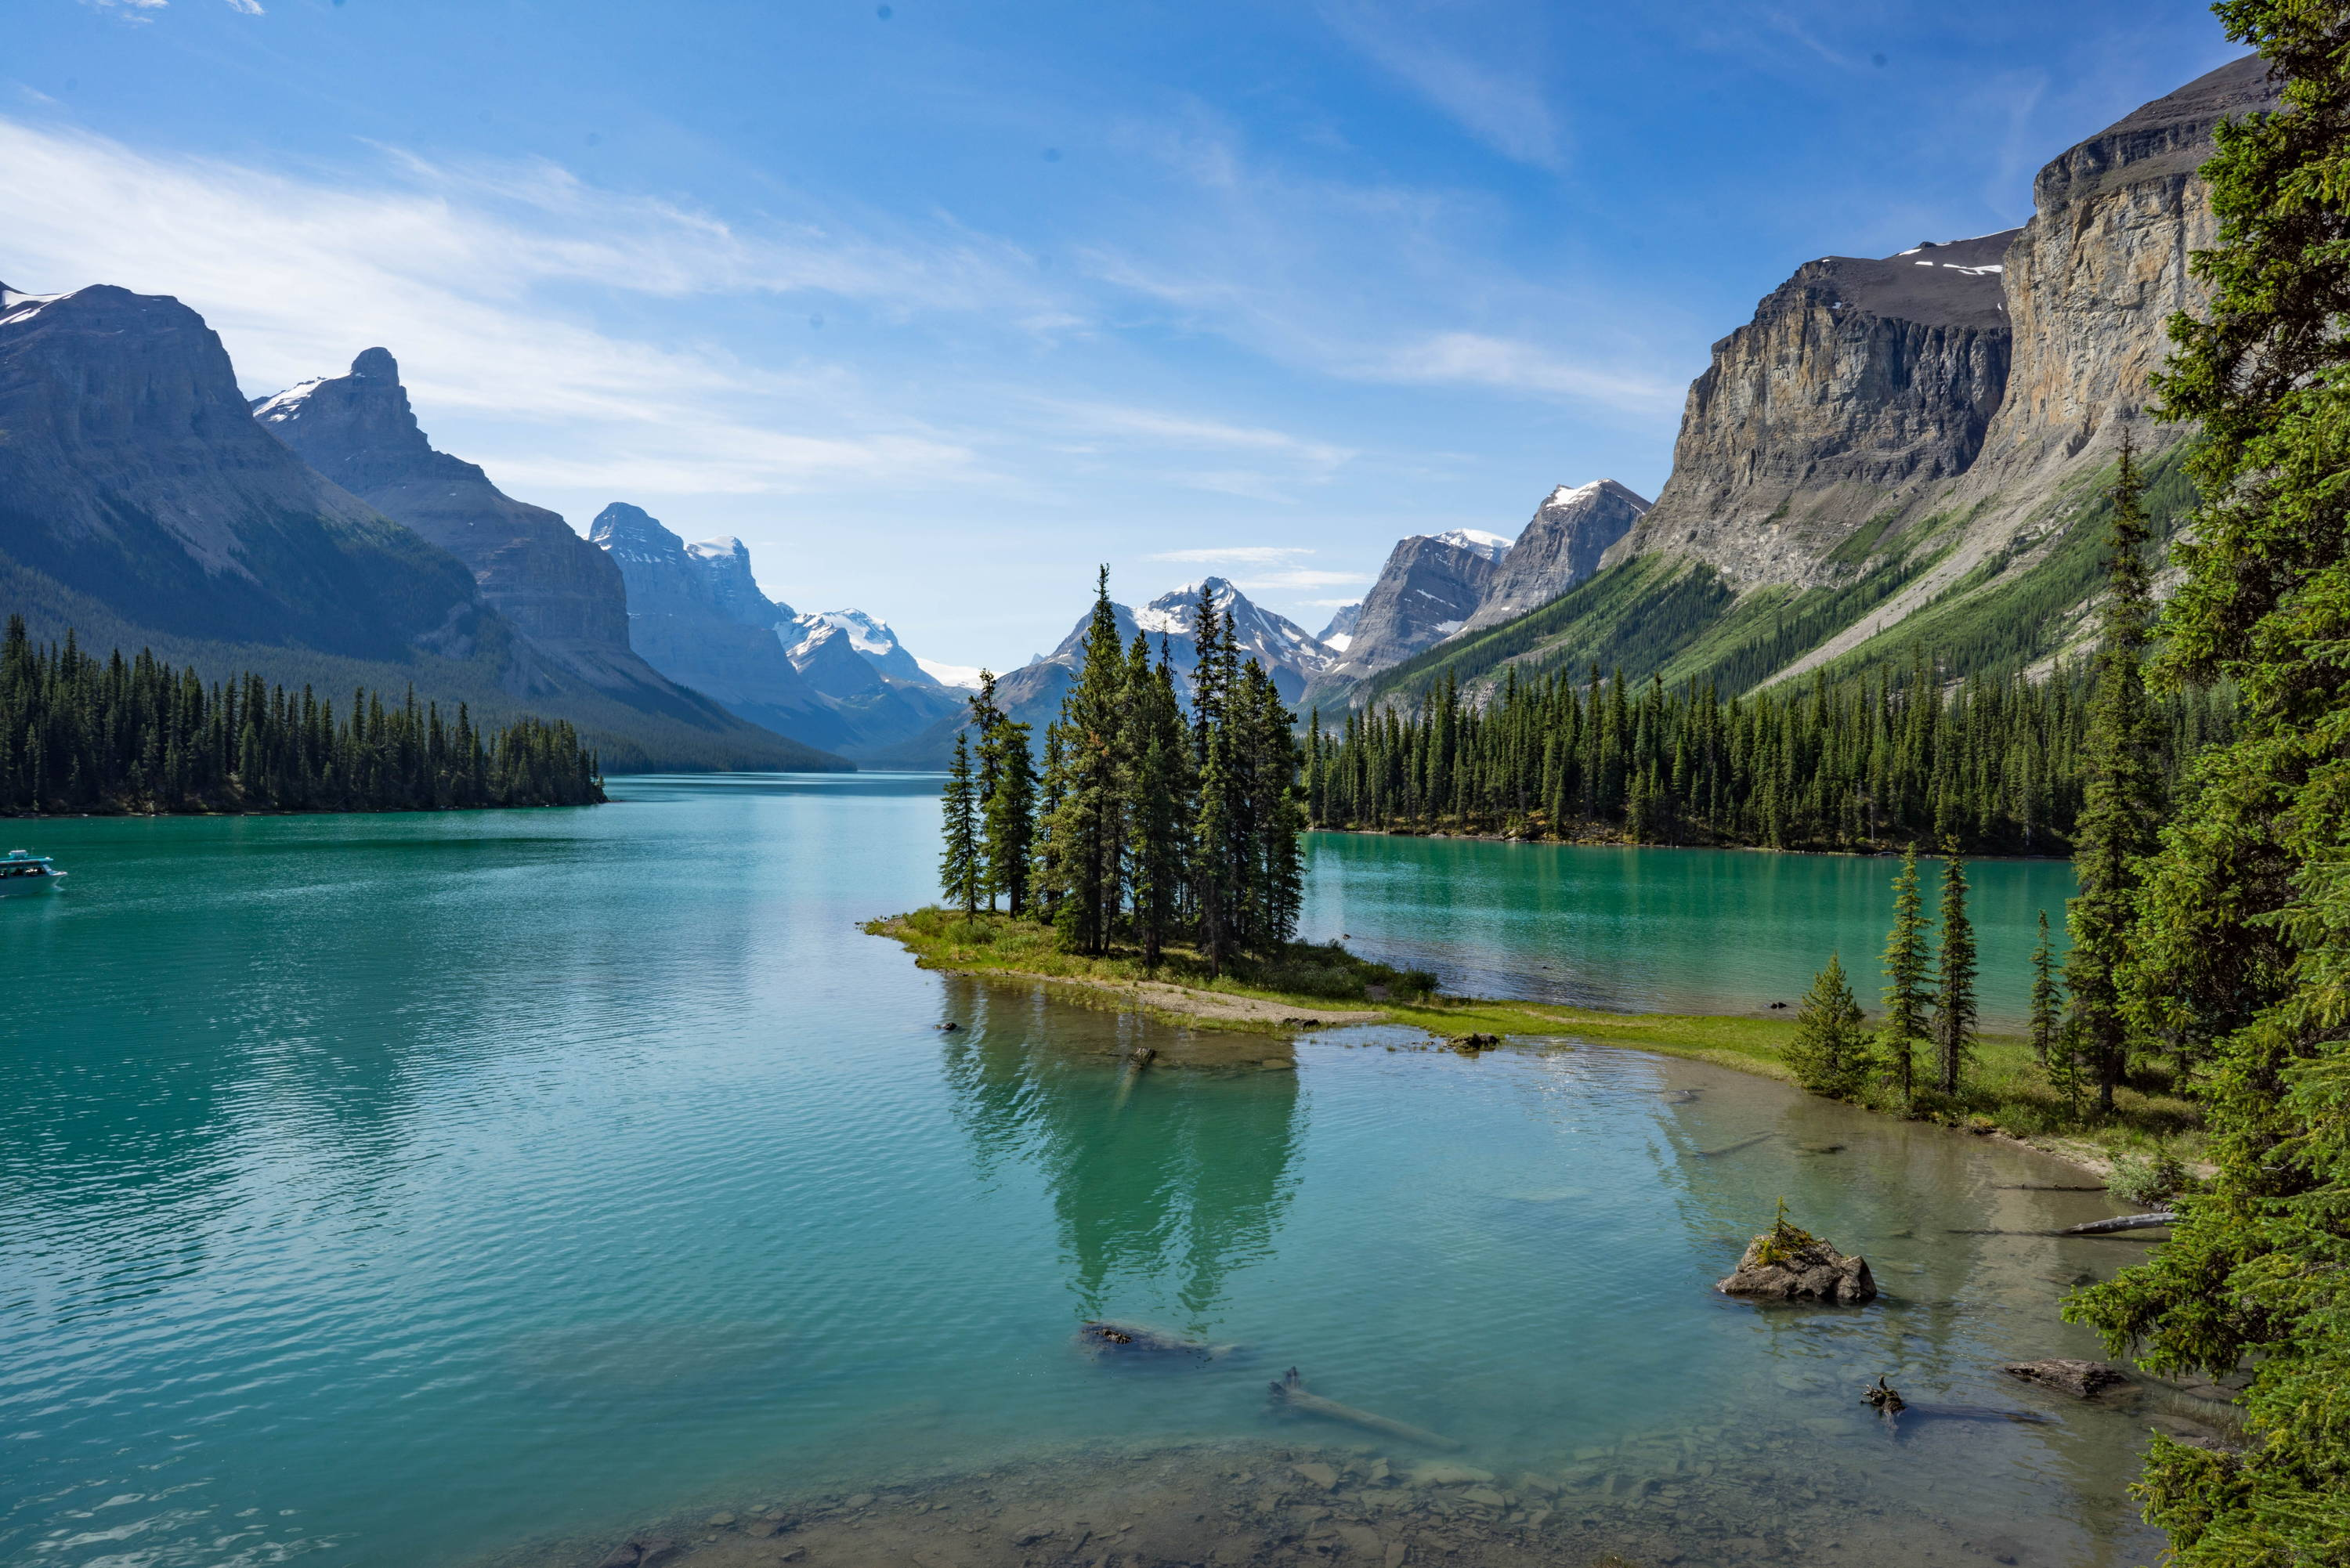 Things to Do in the Canadian Rockies: Island full of pine trees sits awkwardly in a teal-blue lake with mountains surrounding.